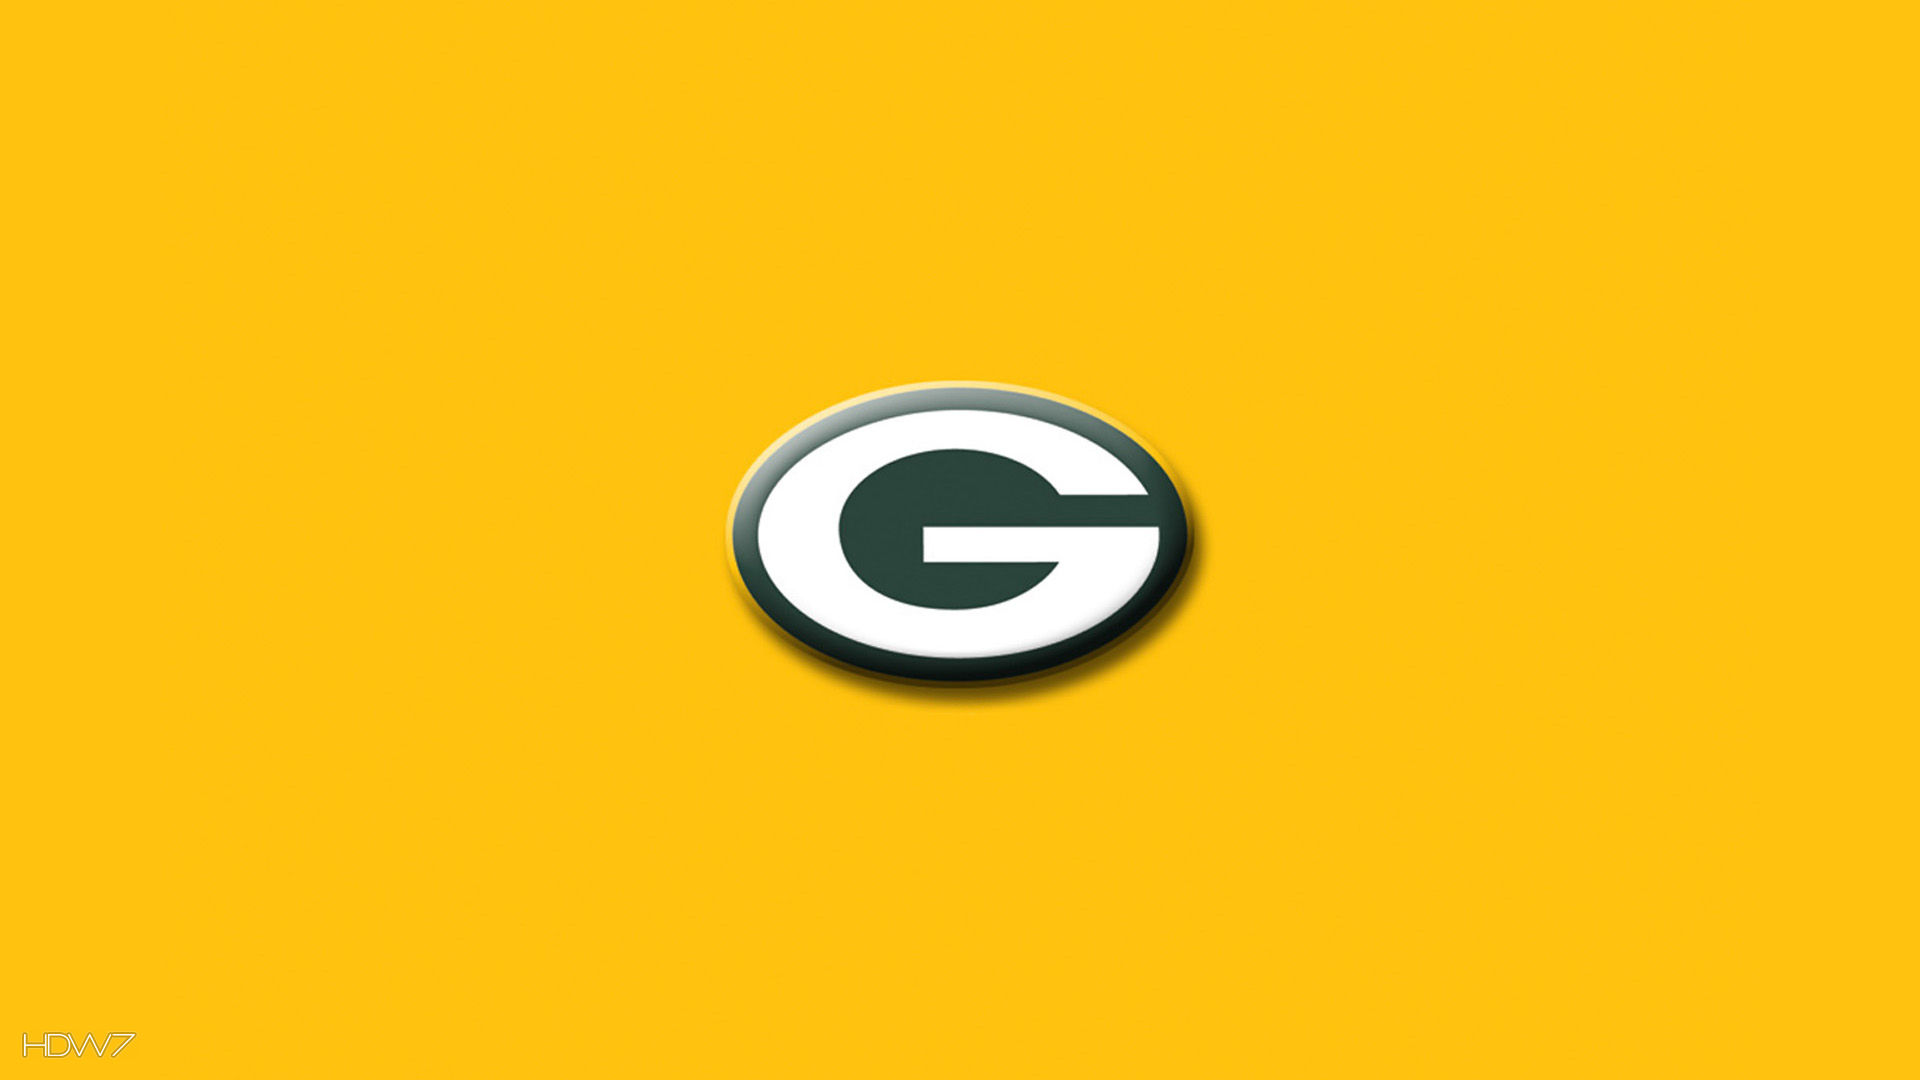 Full-HD-p-Green-bay-packers-HD-Desktop-Backgrounds-wallpaper-wpc5805222